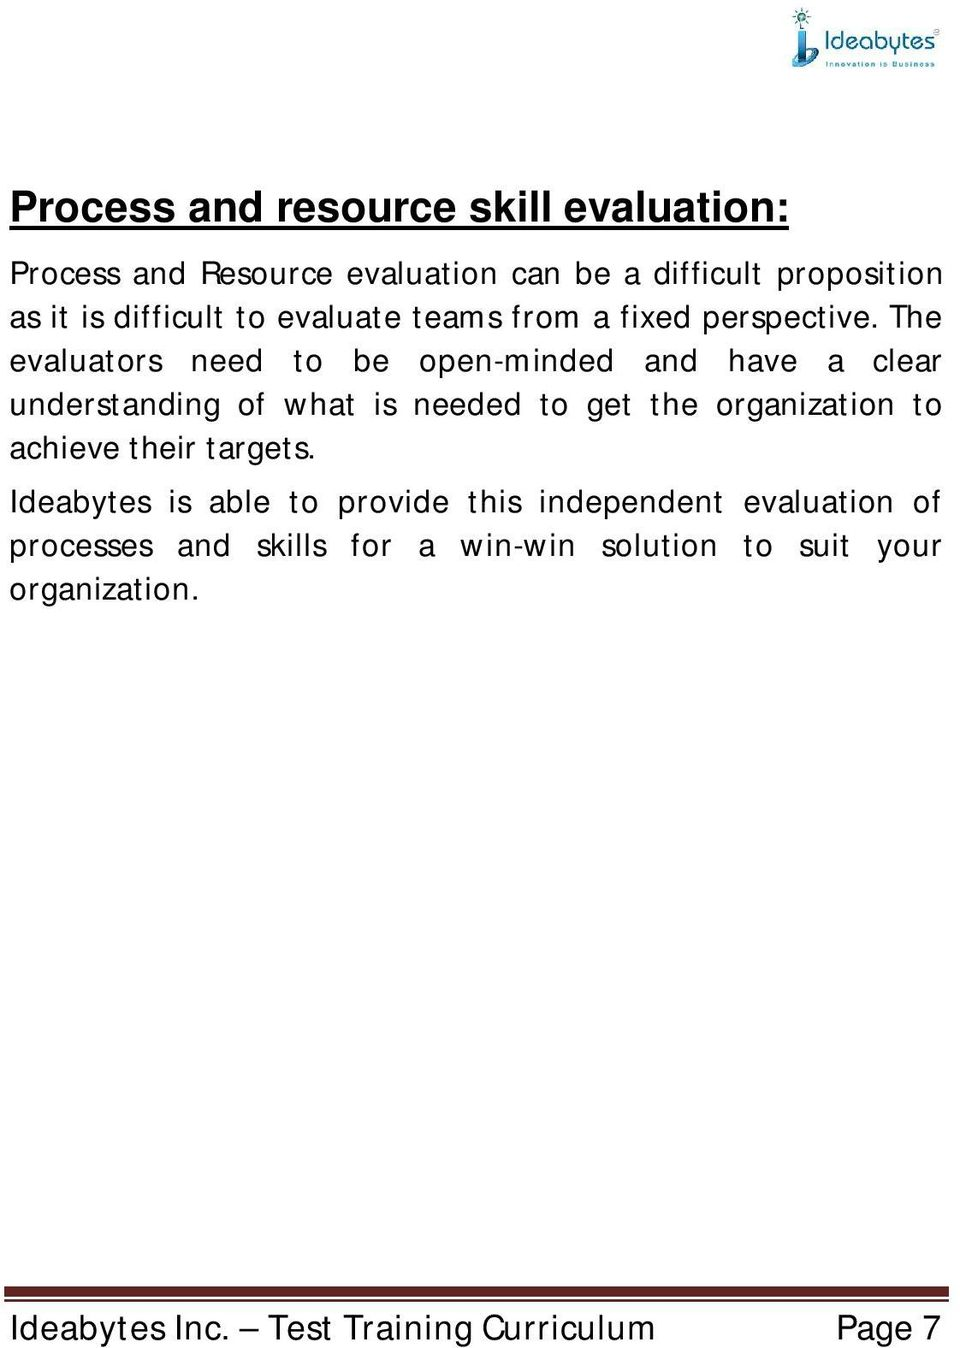 The evaluators need to be open-minded and have a clear understanding of what is needed to get the organization to